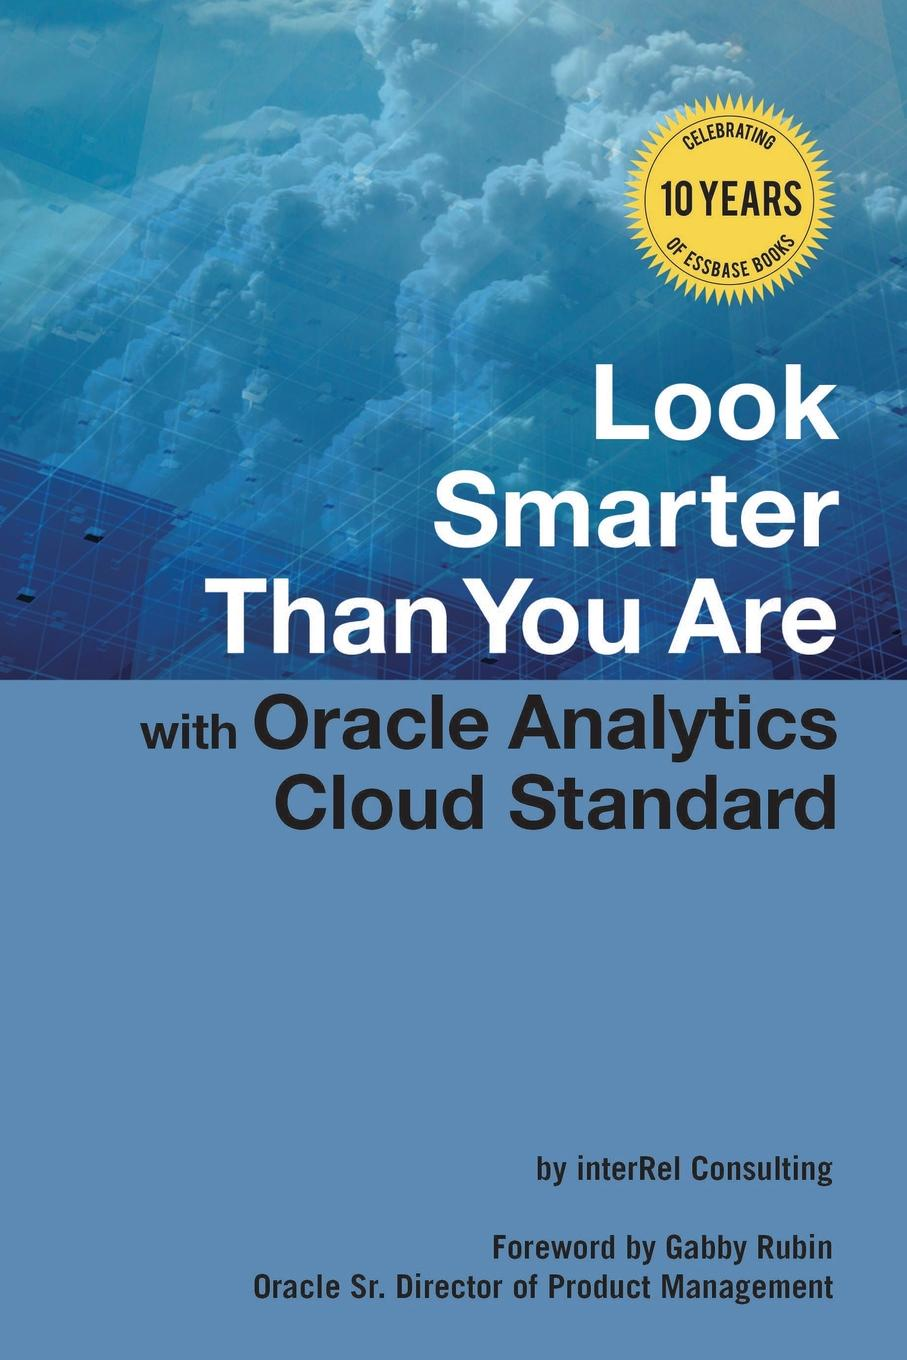 Edward Roske, Tracy McMullen, Glenn Schwartzberg Look Smarter Than You Are with Oracle Analytics Cloud Standard Edition банн к дэдпул уничтожает вселенную marvel опять